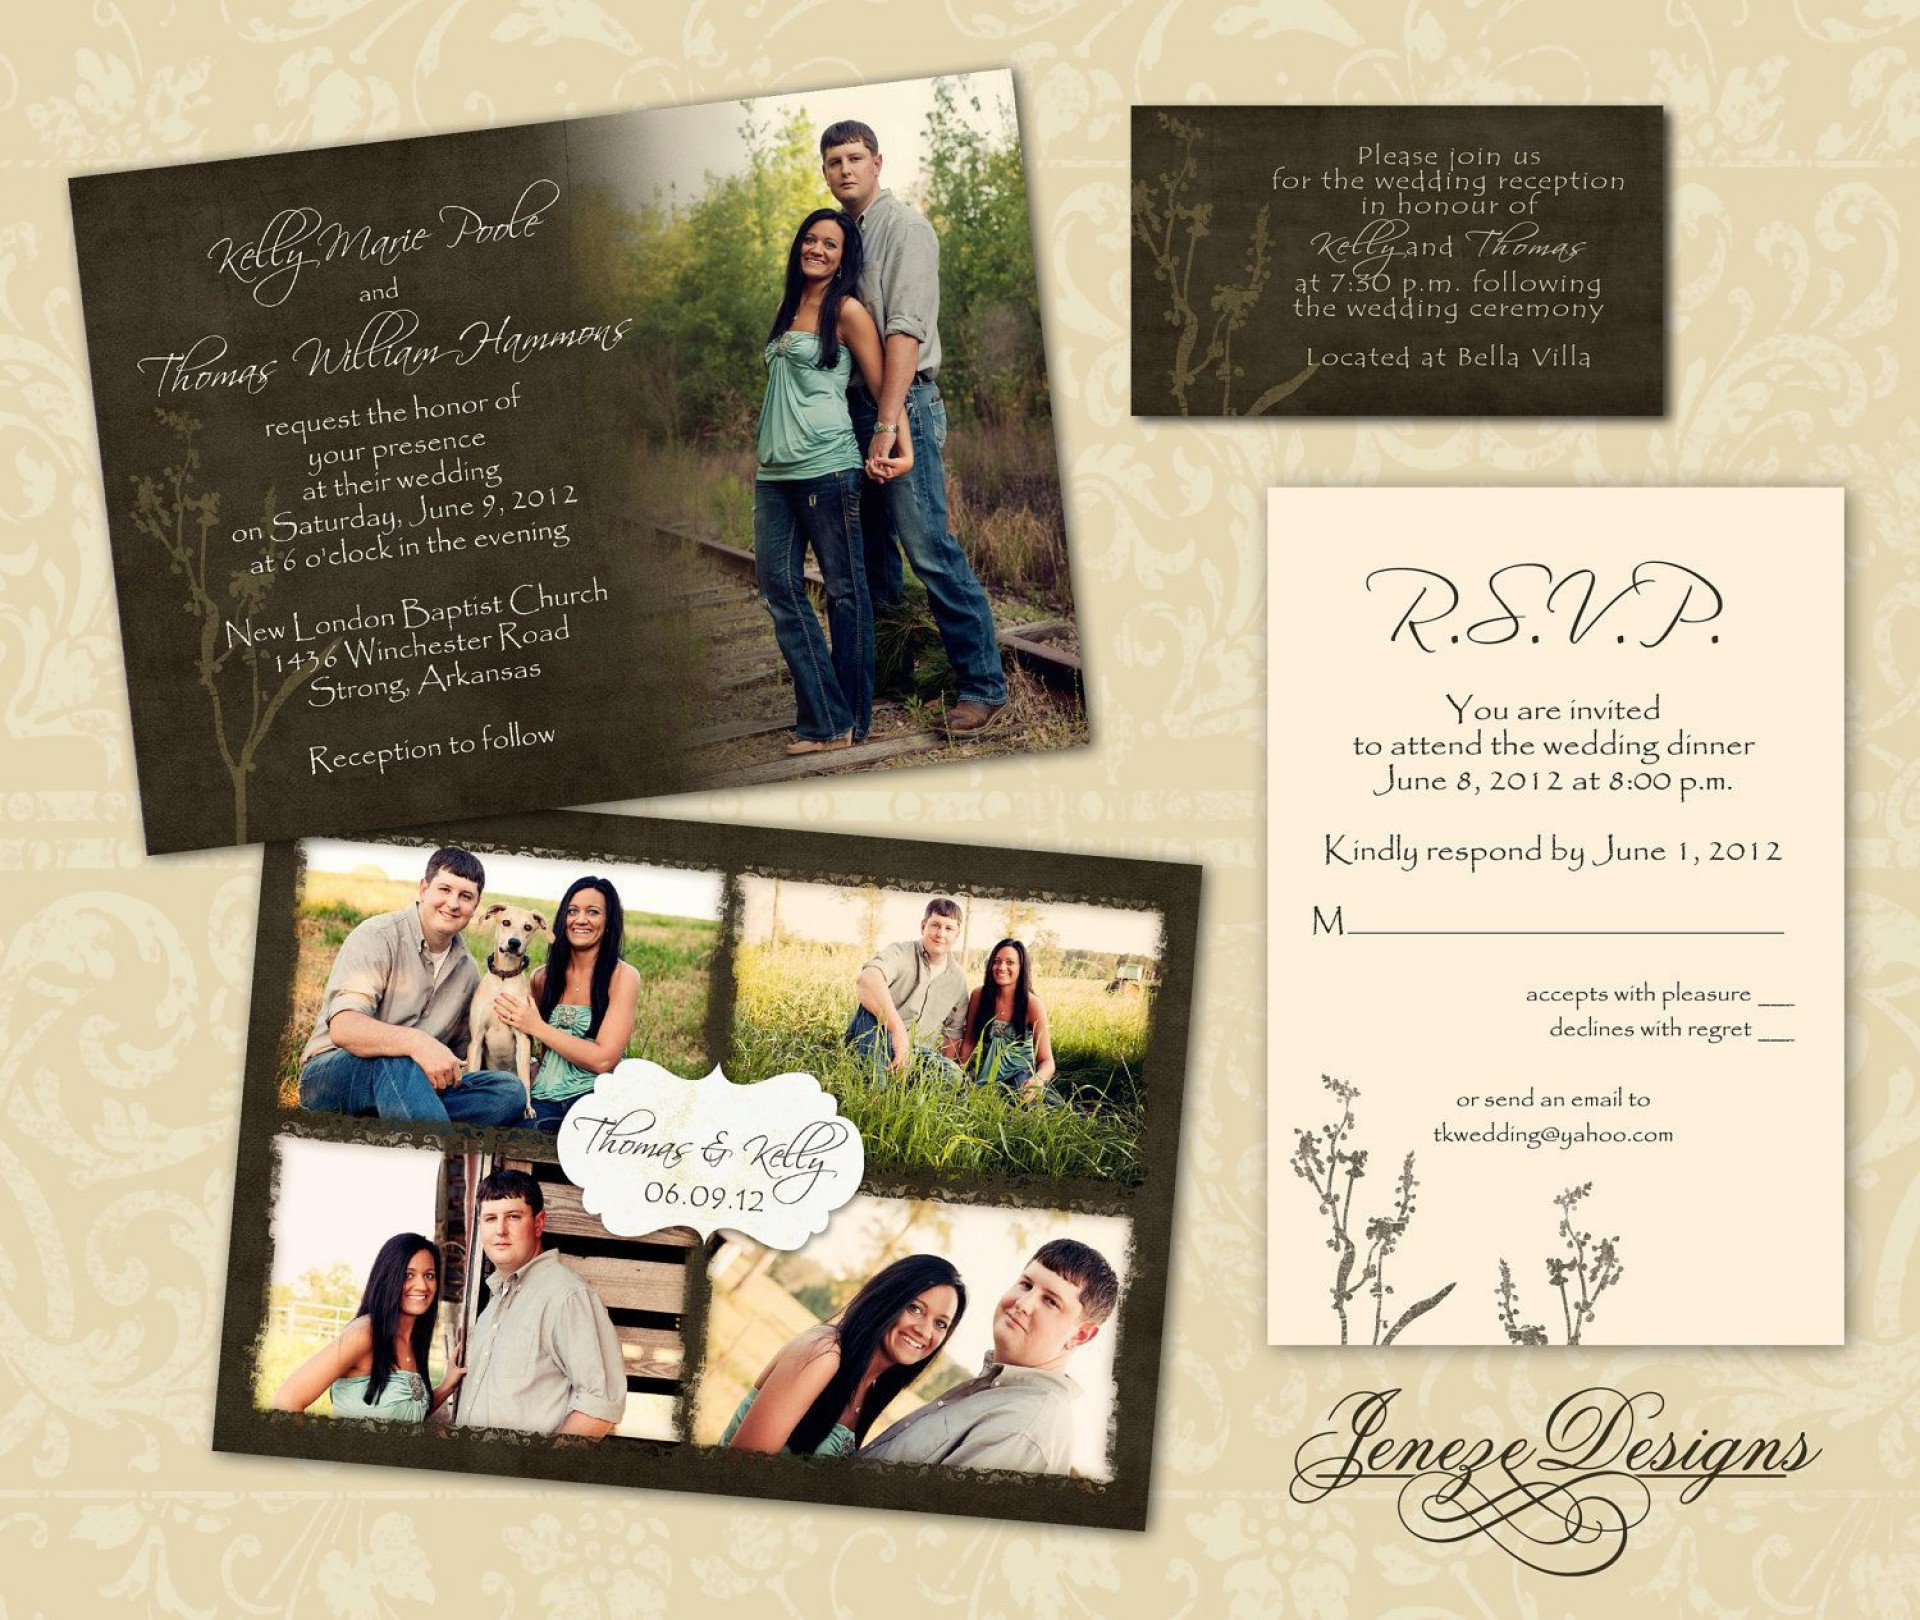 000 Unbelievable Photoshop Wedding Invitation Template High Definition  Templates Hindu Psd Free Download Card1920